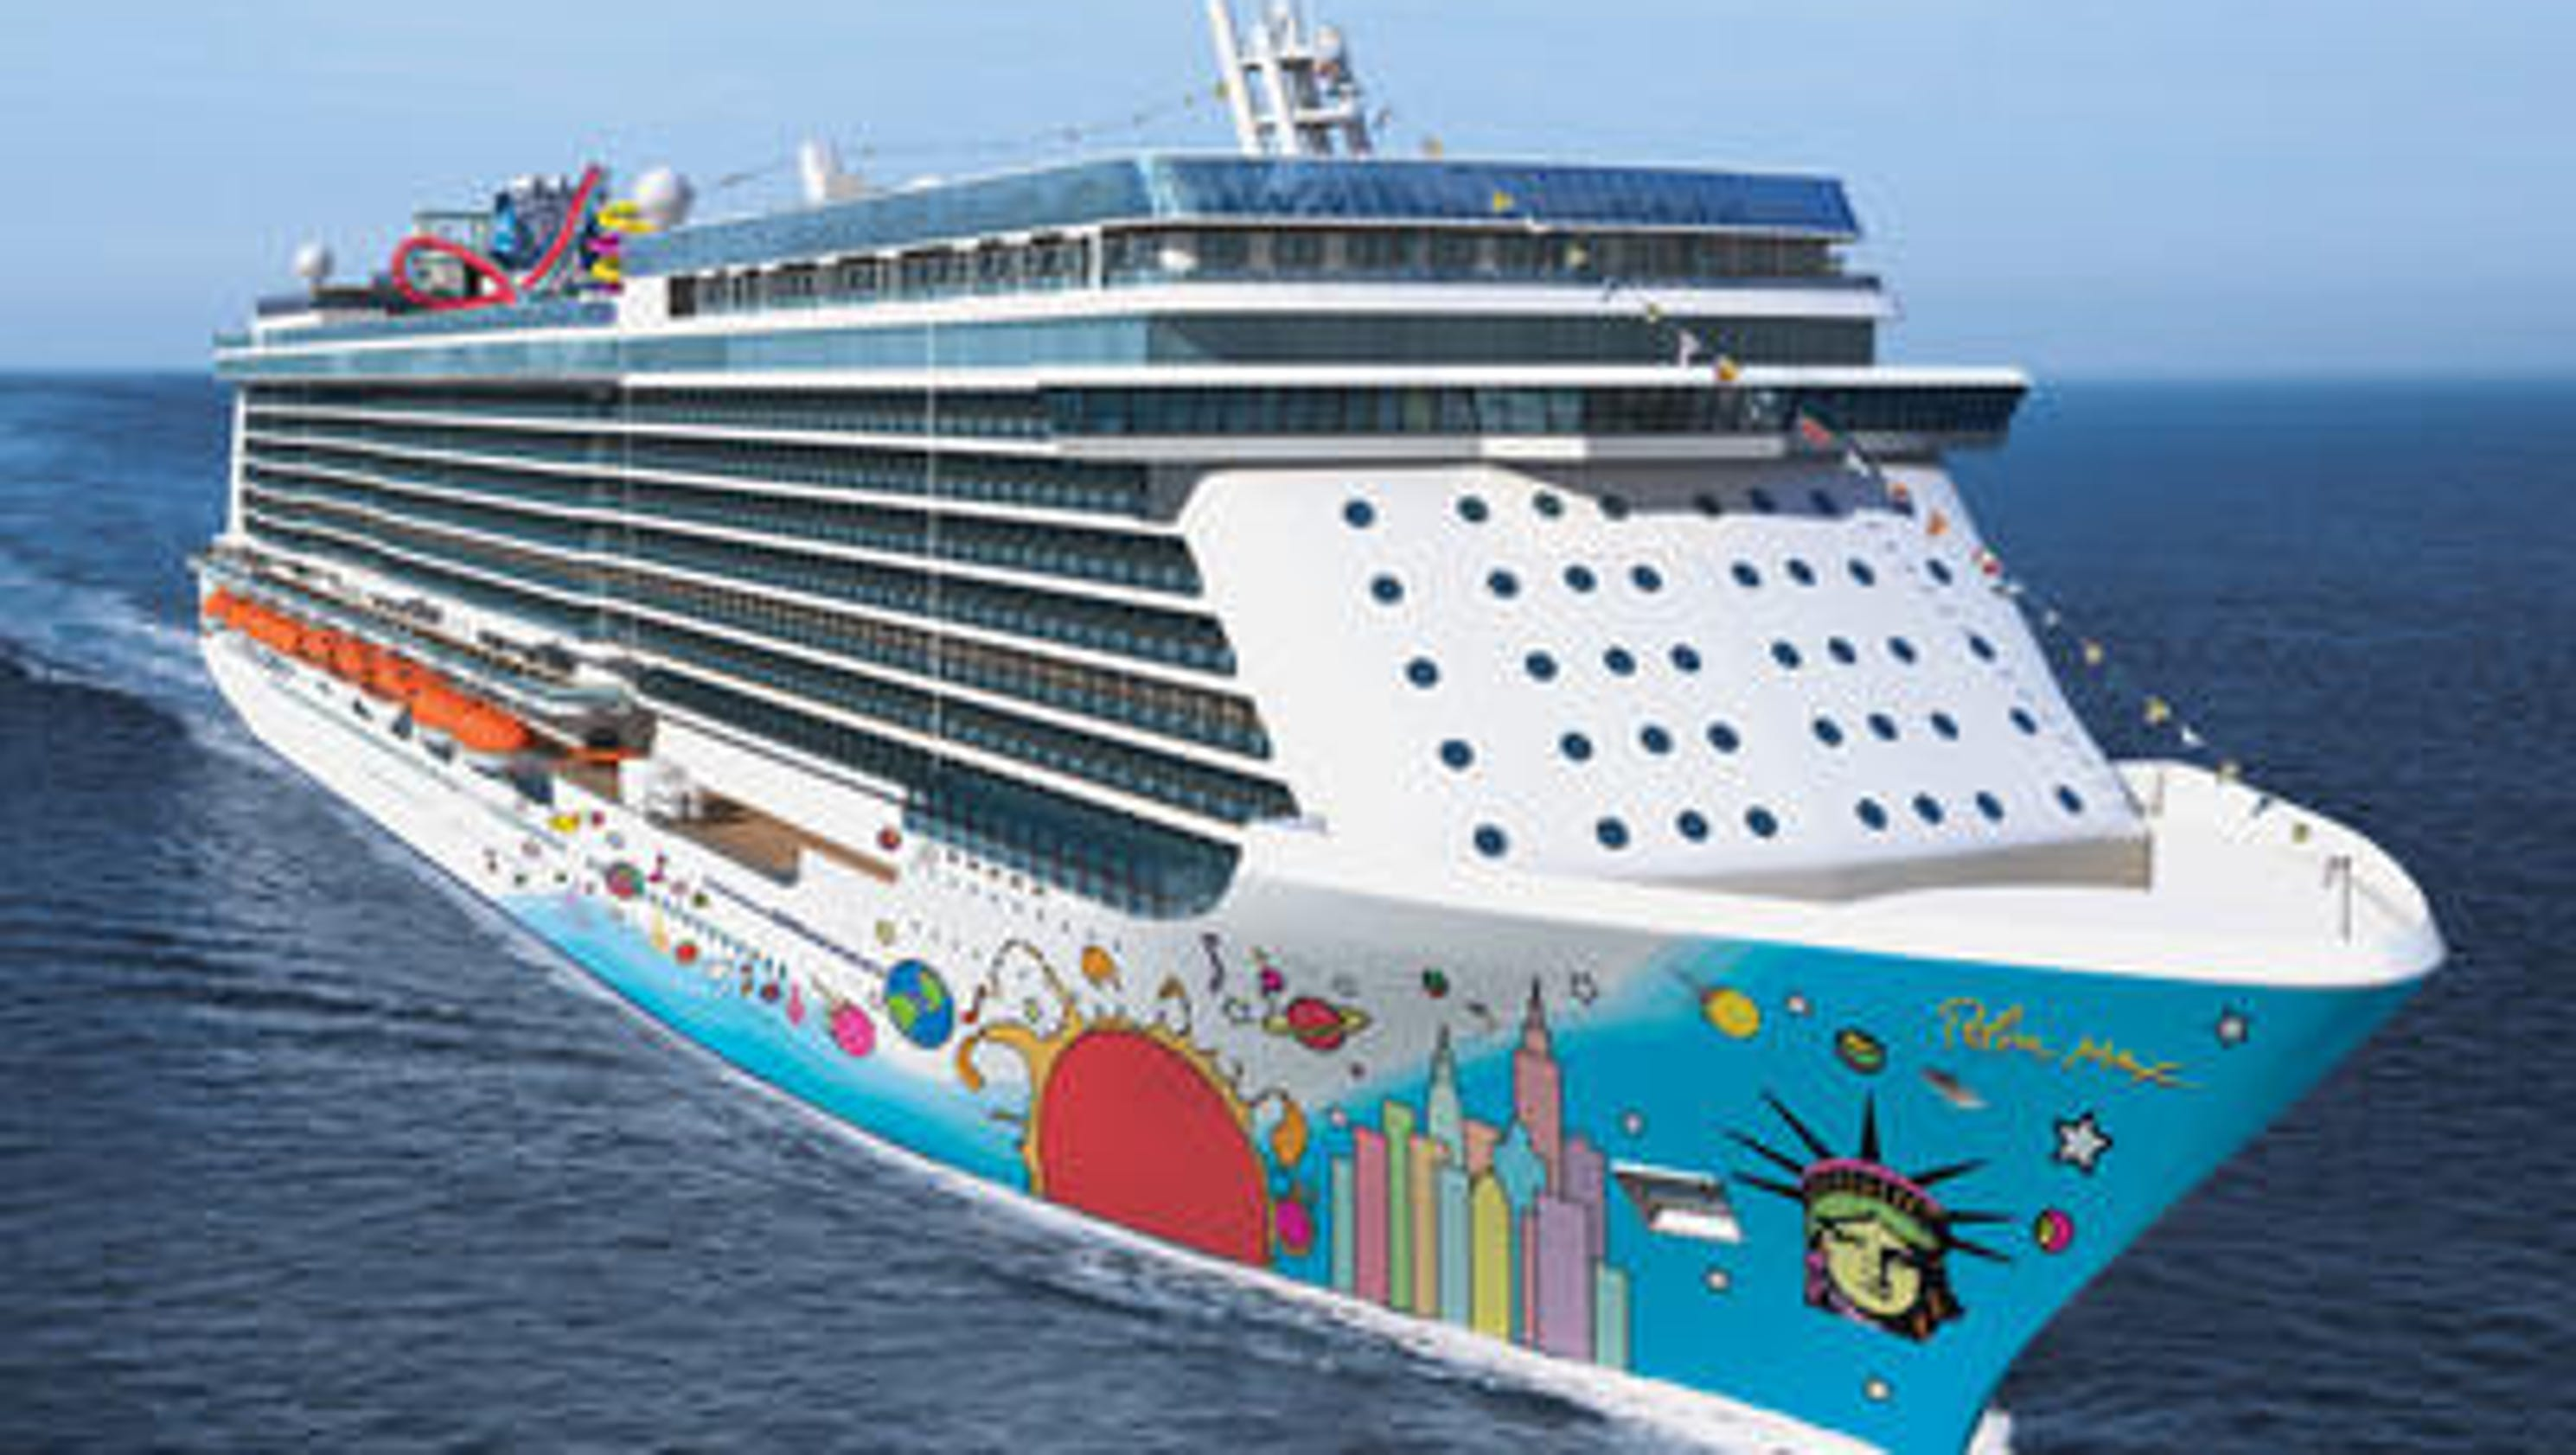 New Law Makes Public Crimes Aboard Cruise Ships - Cruise ship crimes